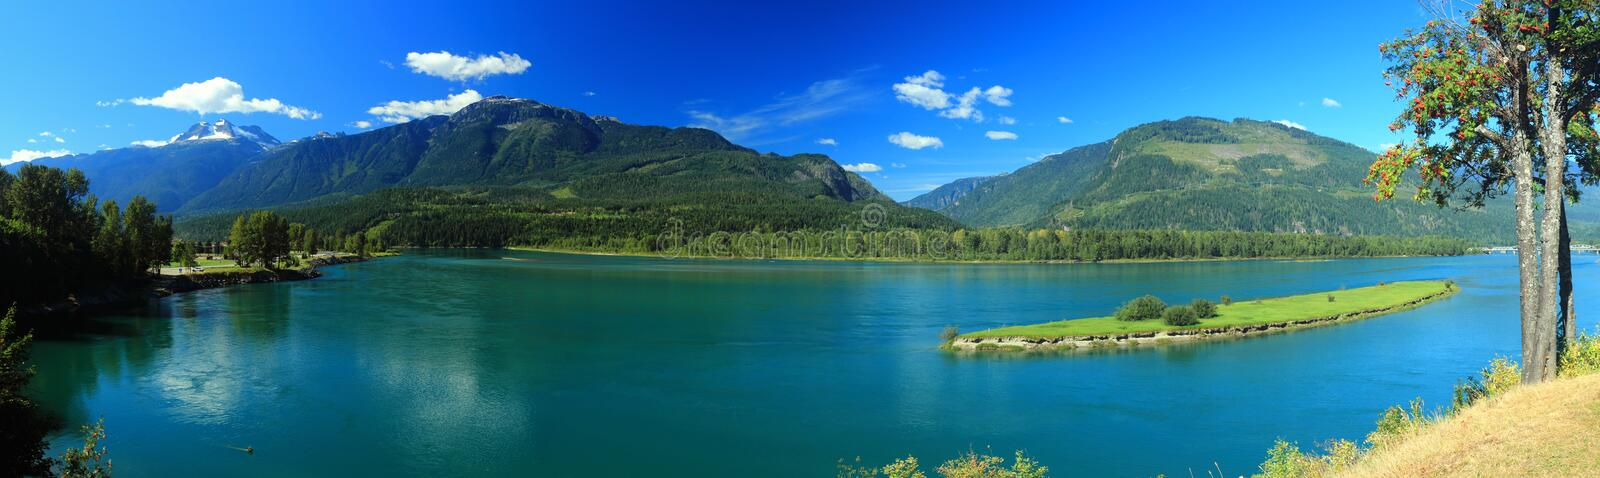 Landscape Panorama of Columbia River at Revelstoke, British Columbia, Canada royalty free stock photography